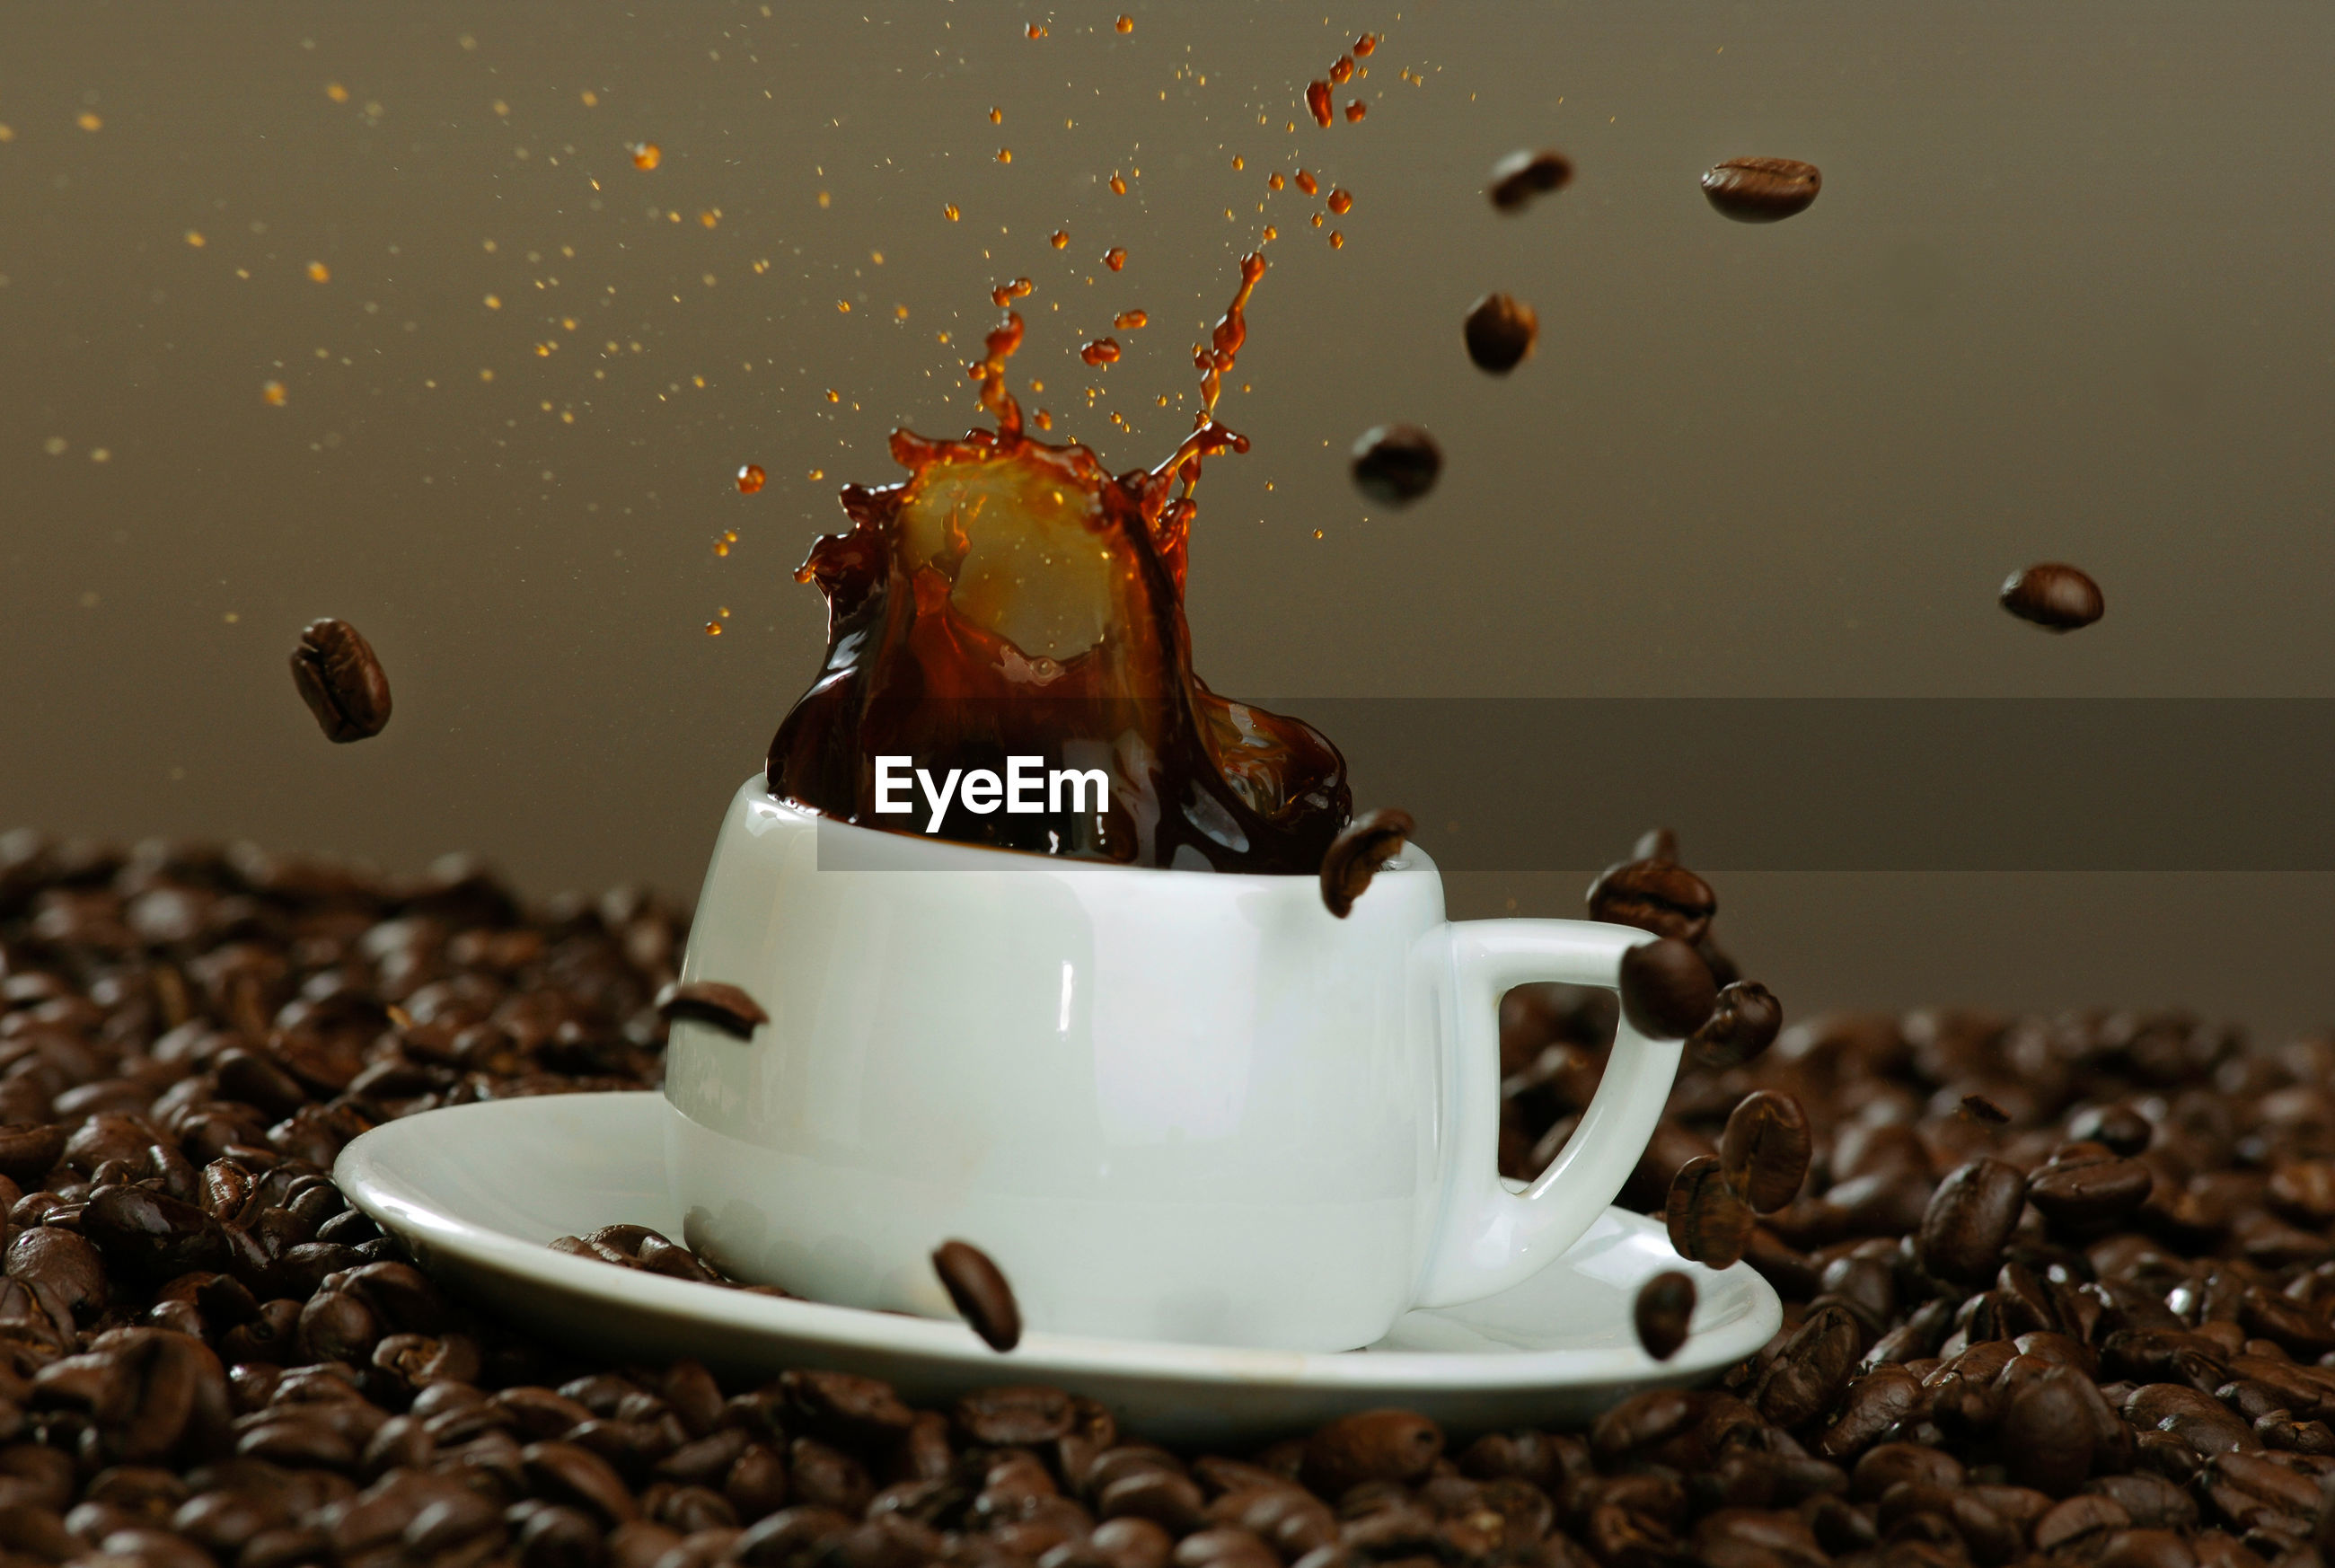 Roasted beans falling in coffee cup